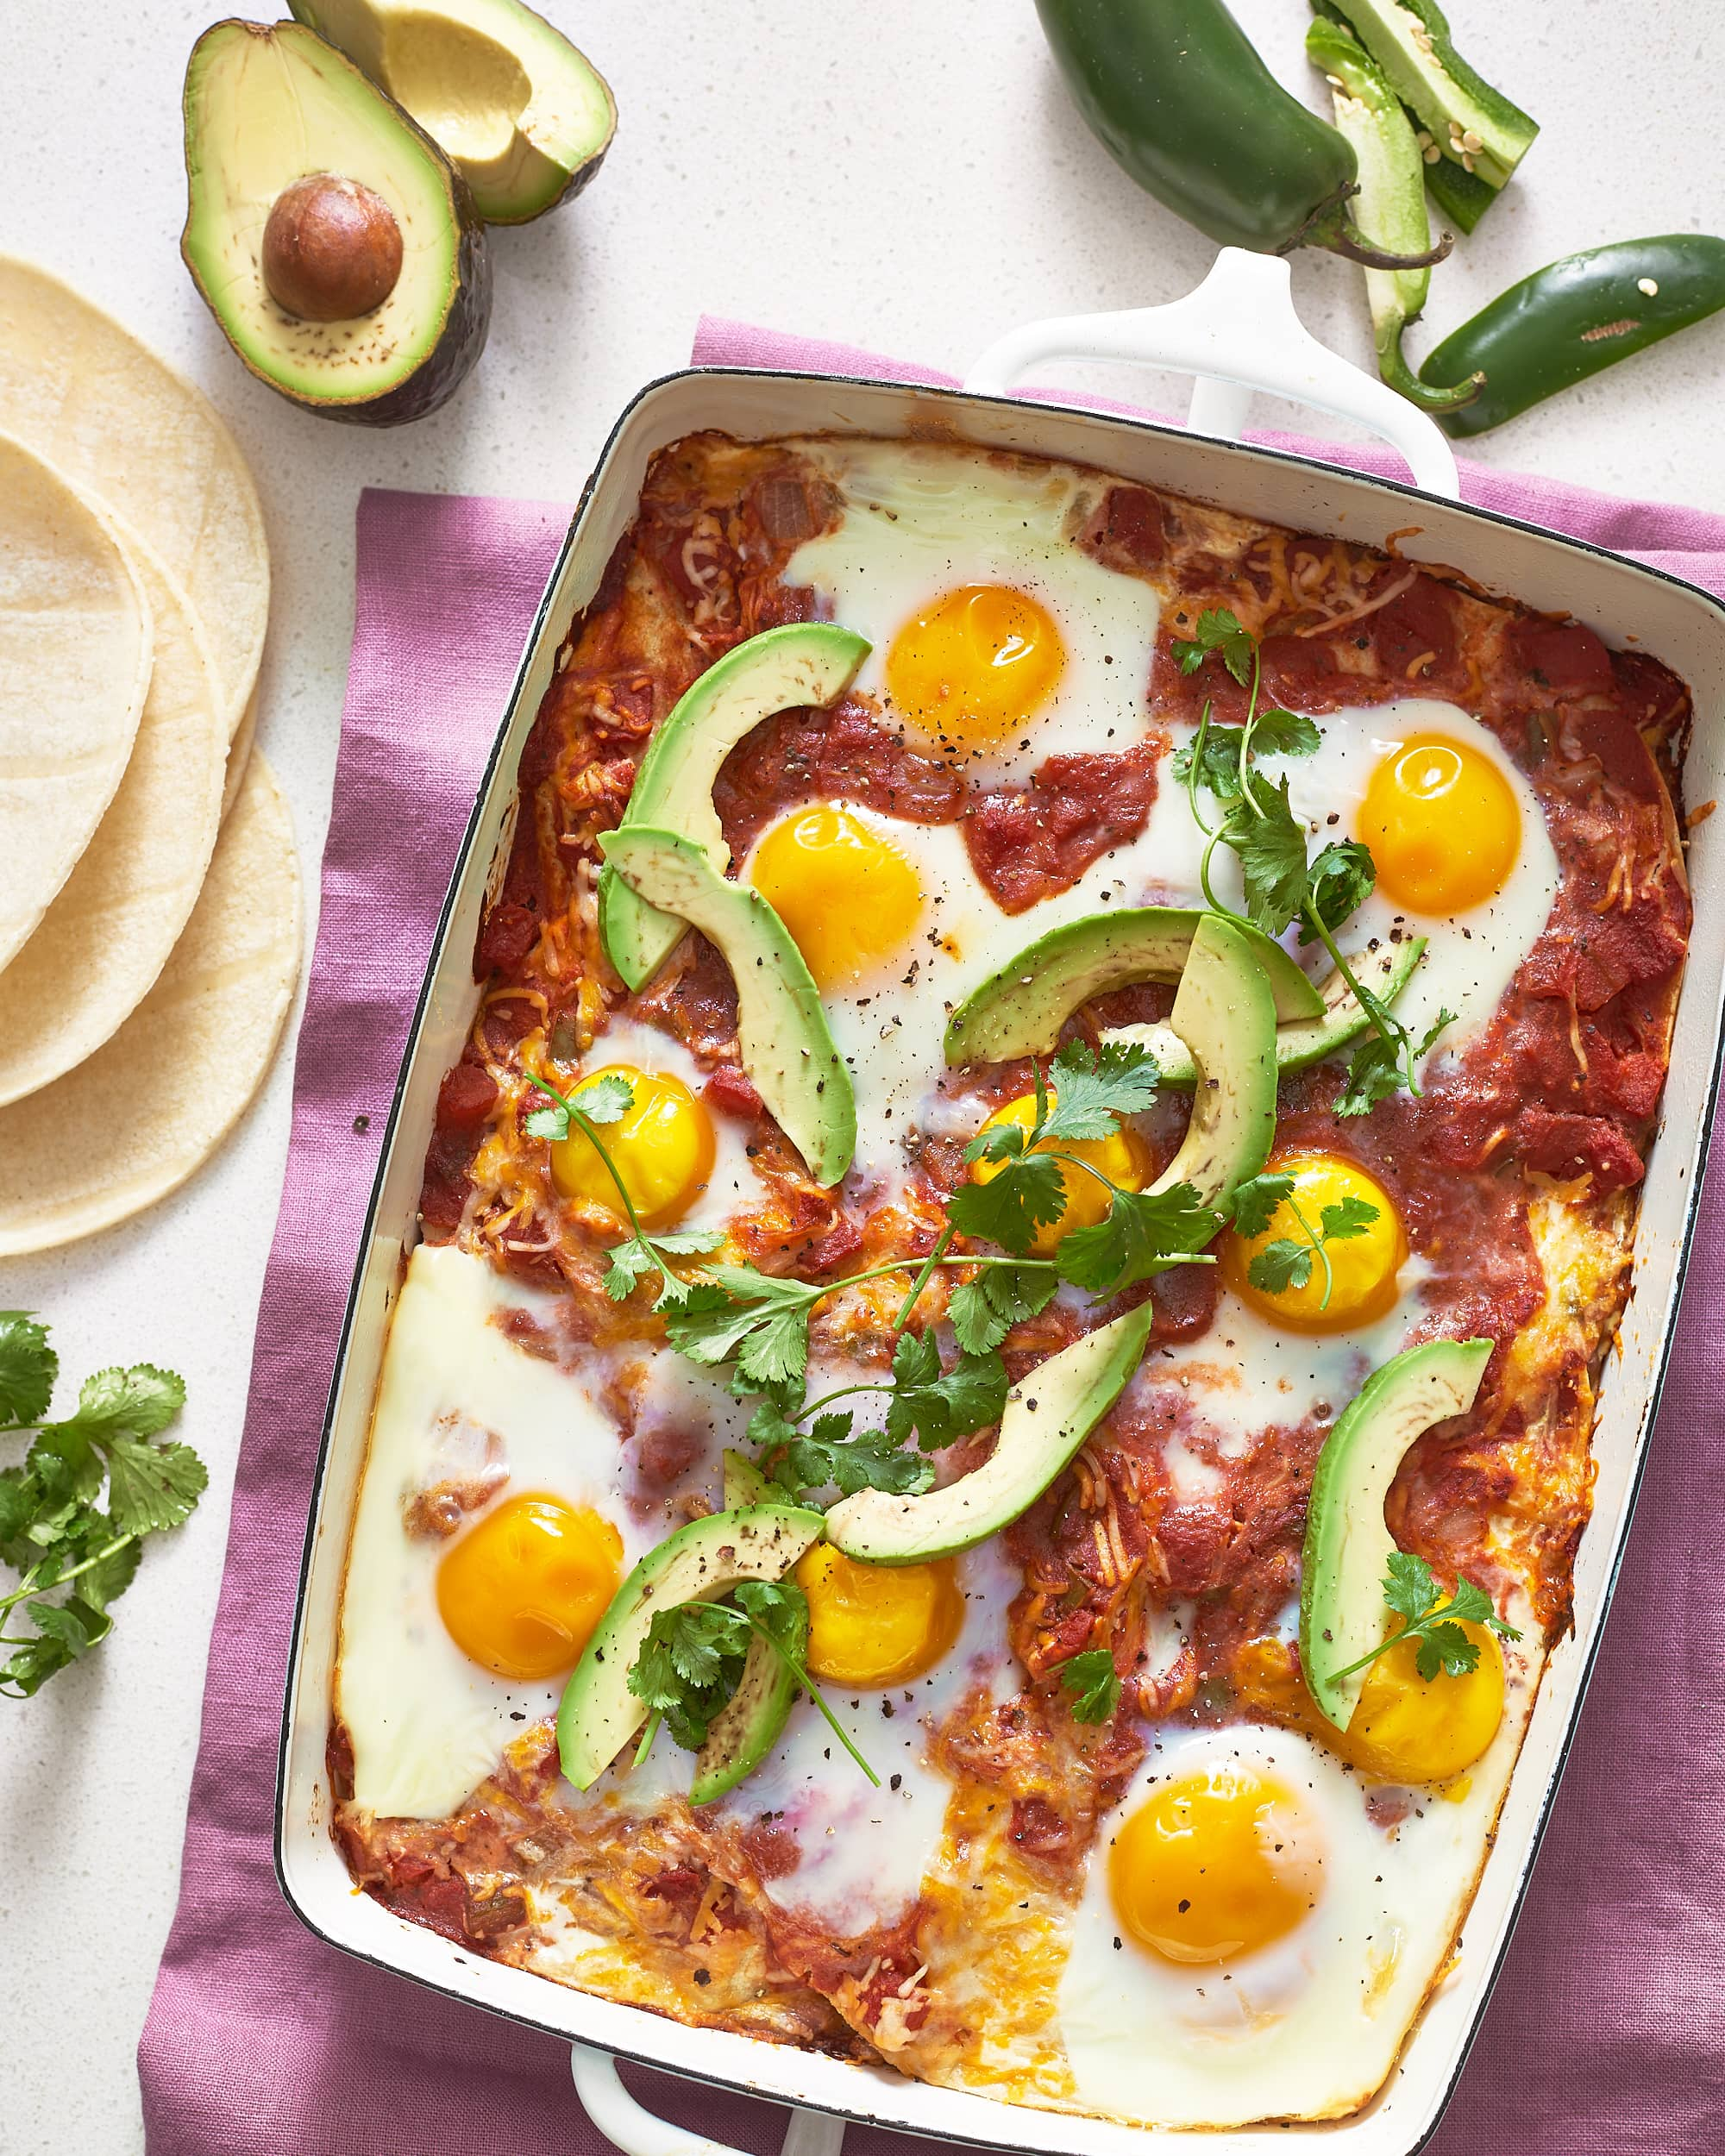 18 Avocado Breakfast Ideas That Are Super Satisfying | Kitchn